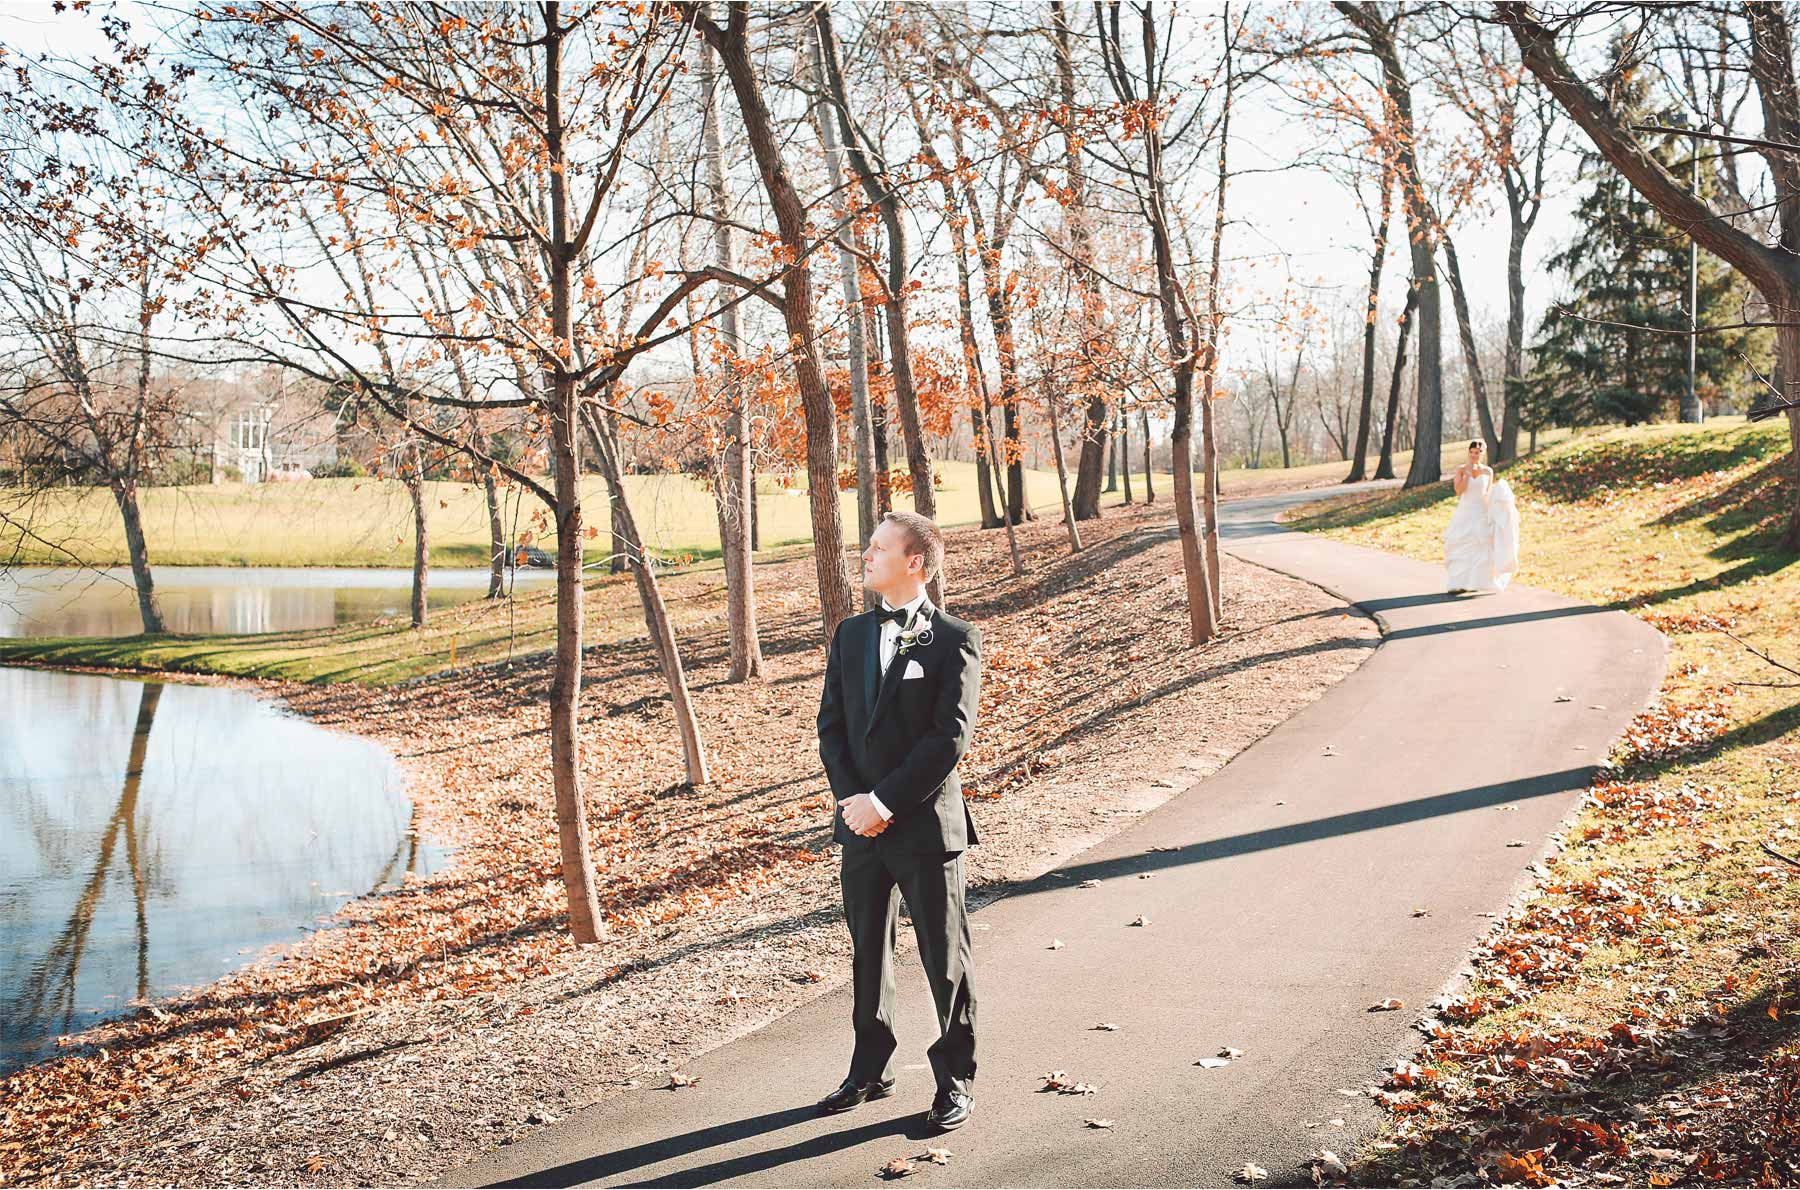 02-Eden-Prairie-Minnesota-Wedding-Photographer-by-Andrew-Vick-Photography-Fall-Autumn-Bearpath-Golf-Country-Club-First-Meeting-Look-Bride-Groom-Vintage-Brittany-and-Ryan.jpg